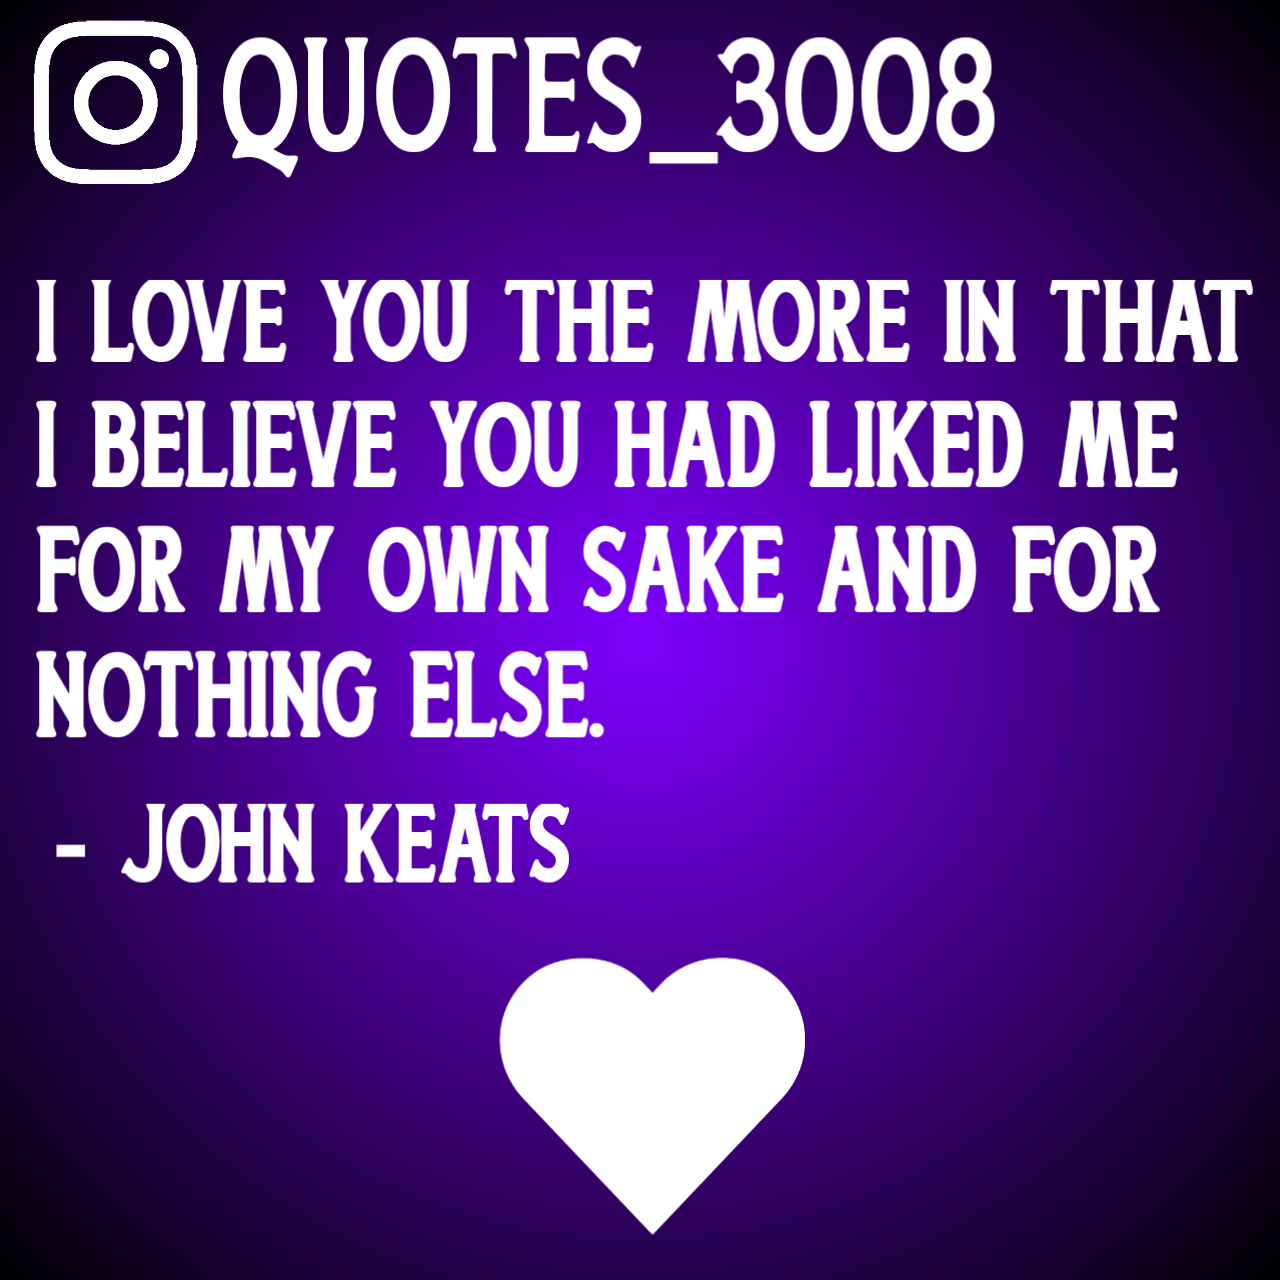 QUOTES_3008 I LOVE YOU THE MORE IN THAT I BELIEVE YOU HAD LIKED ME FOR MY OWN SAKE AND FOR NOTHING ELSE. - JOHN https://inspirational.ly